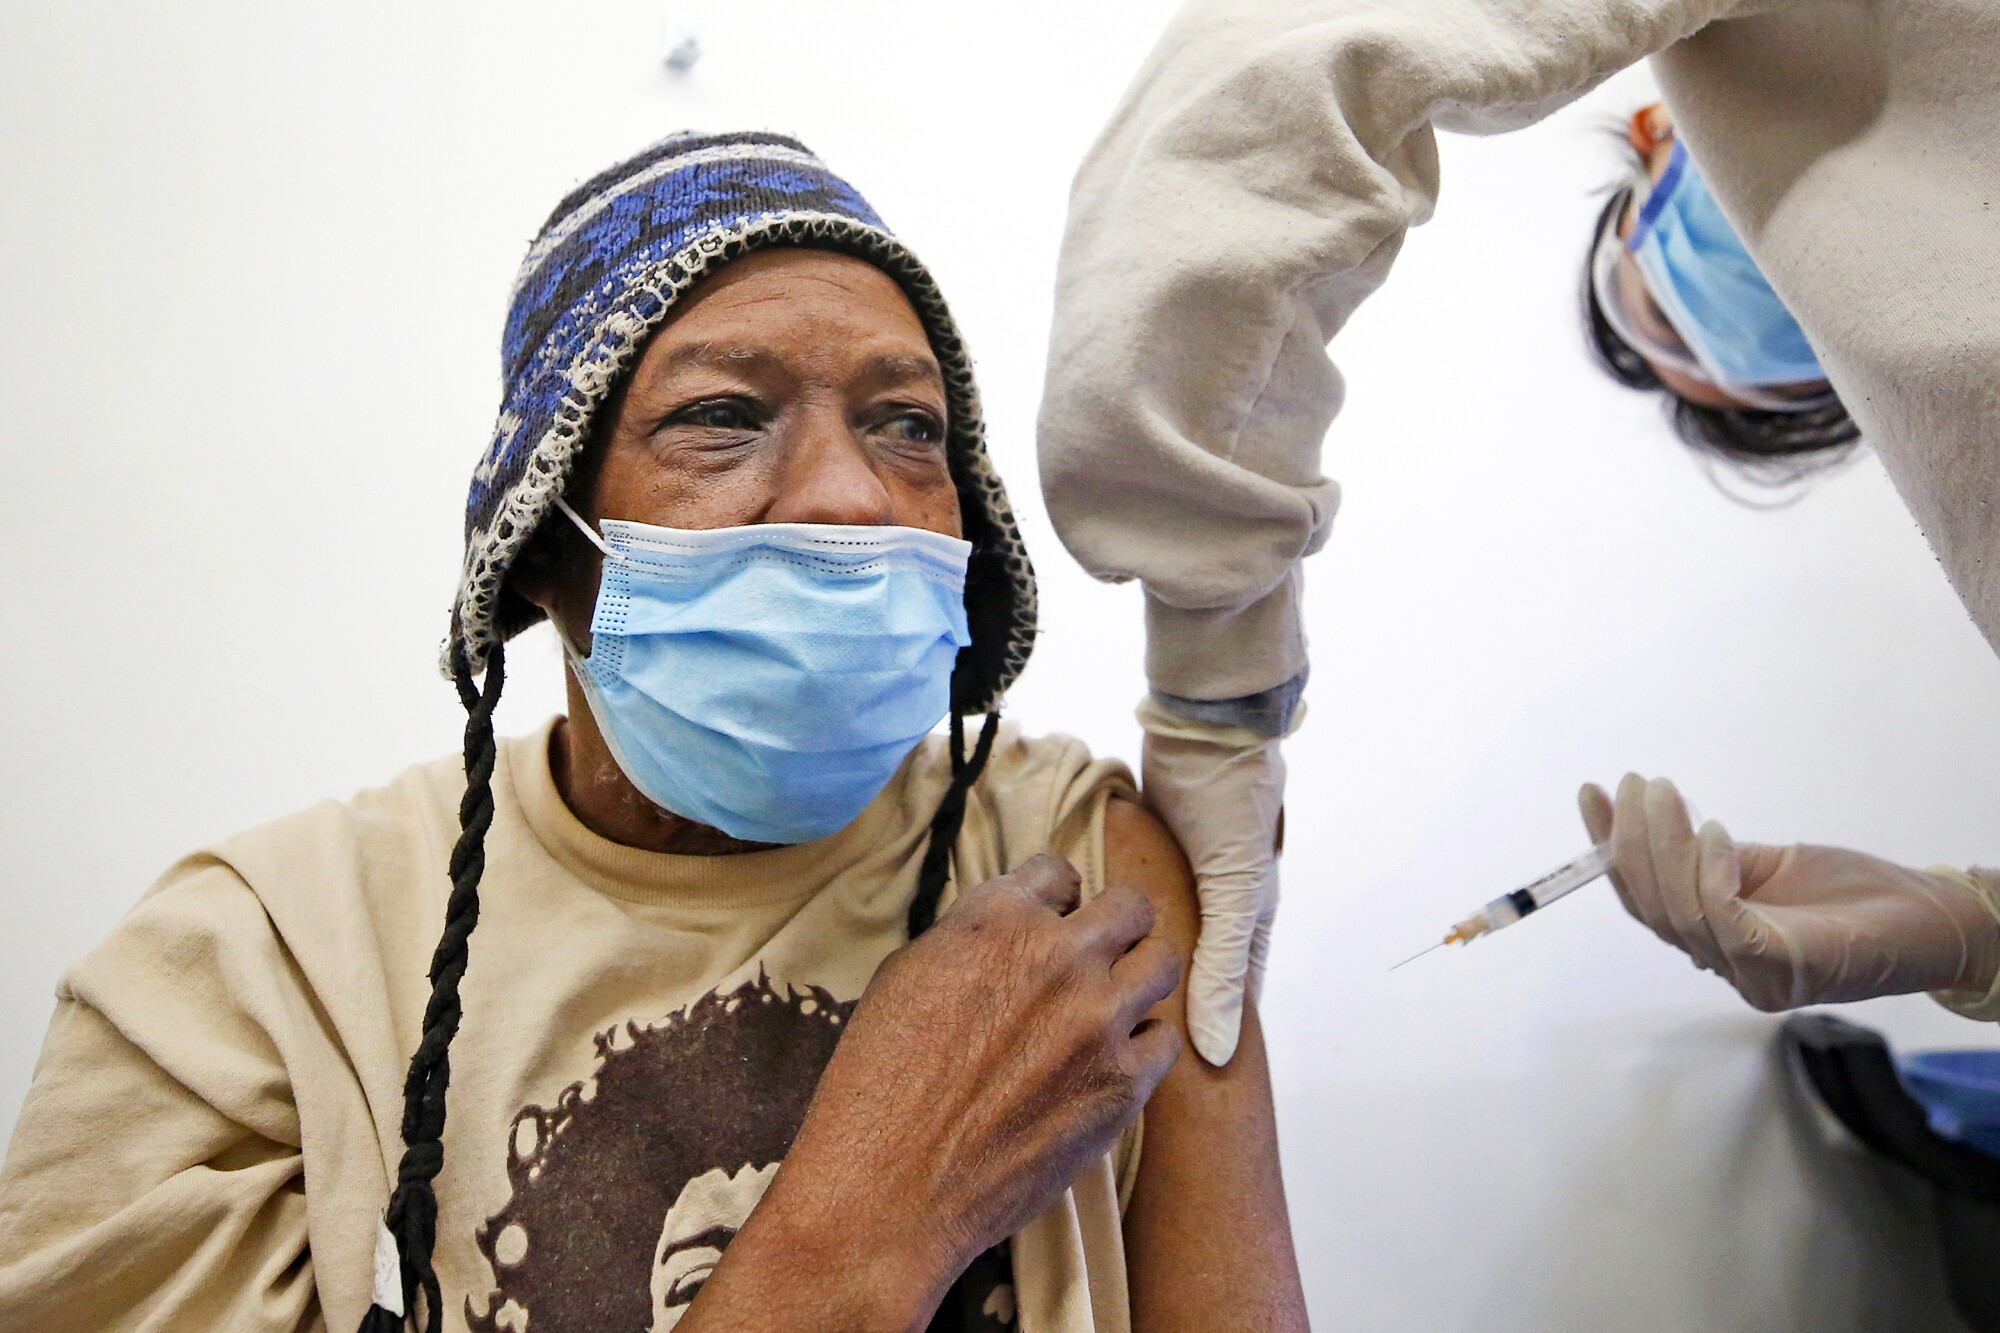 A man receives a vaccination from a nurse.